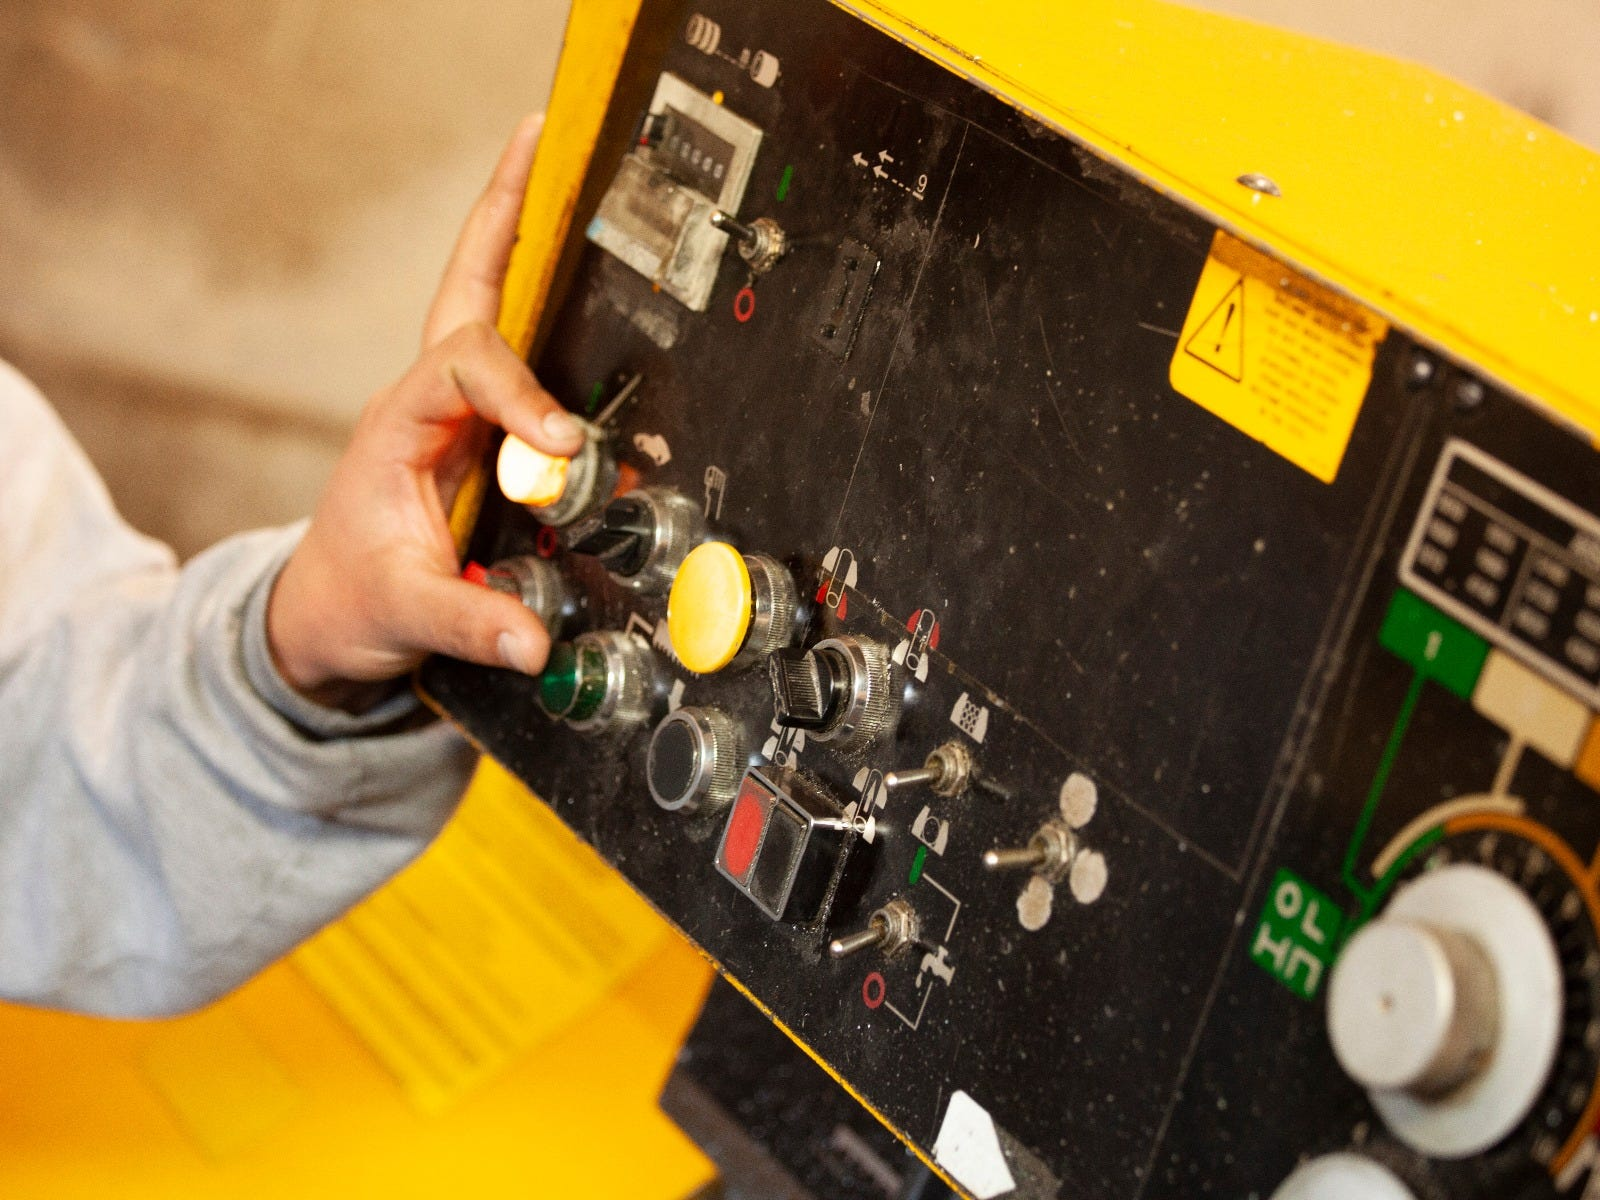 Overcome Operator Fatigue and Distraction with Electronic Controls